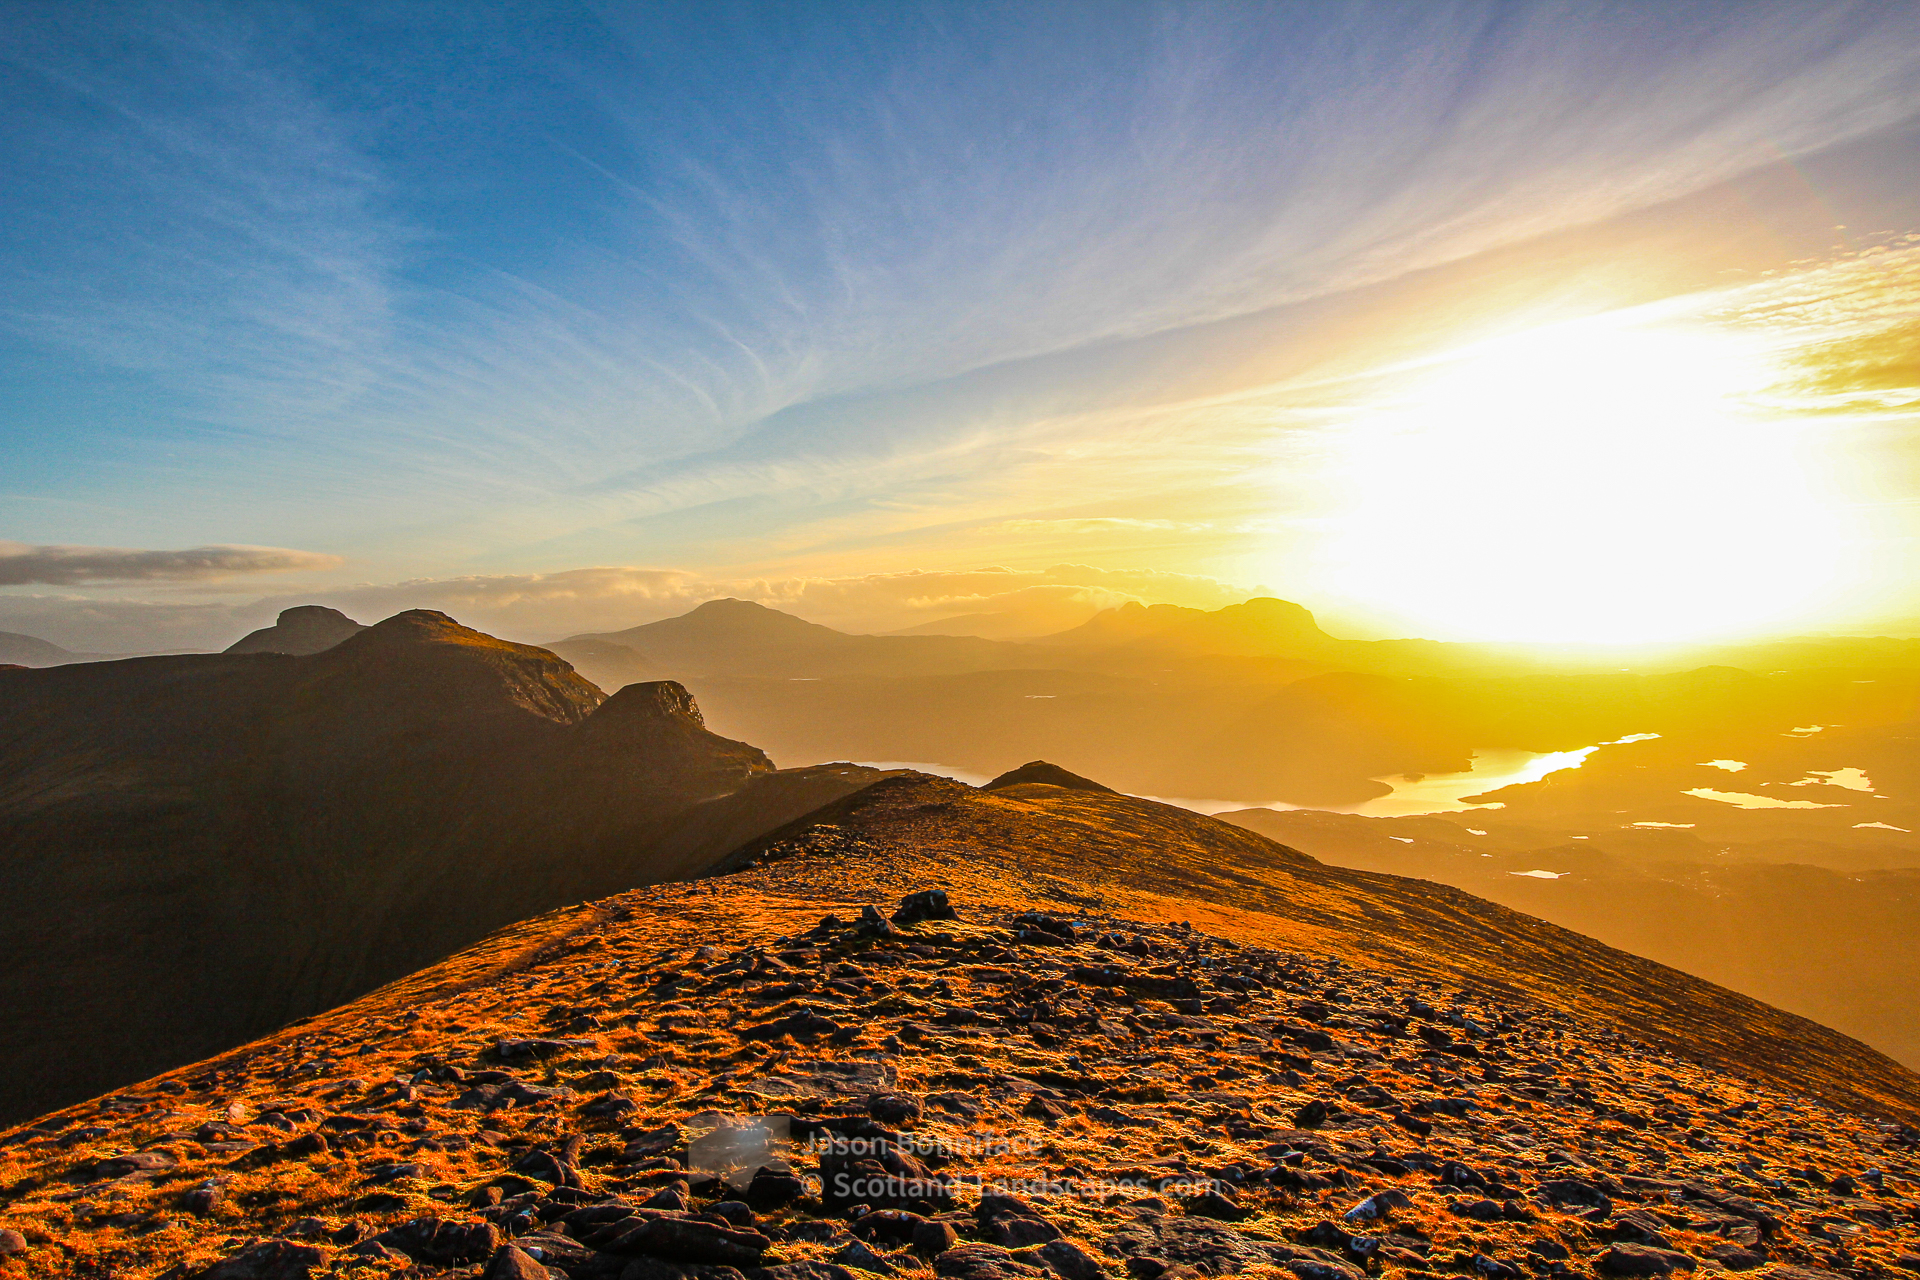 Afternoon Light - Quinag, Assynt & Ullapool